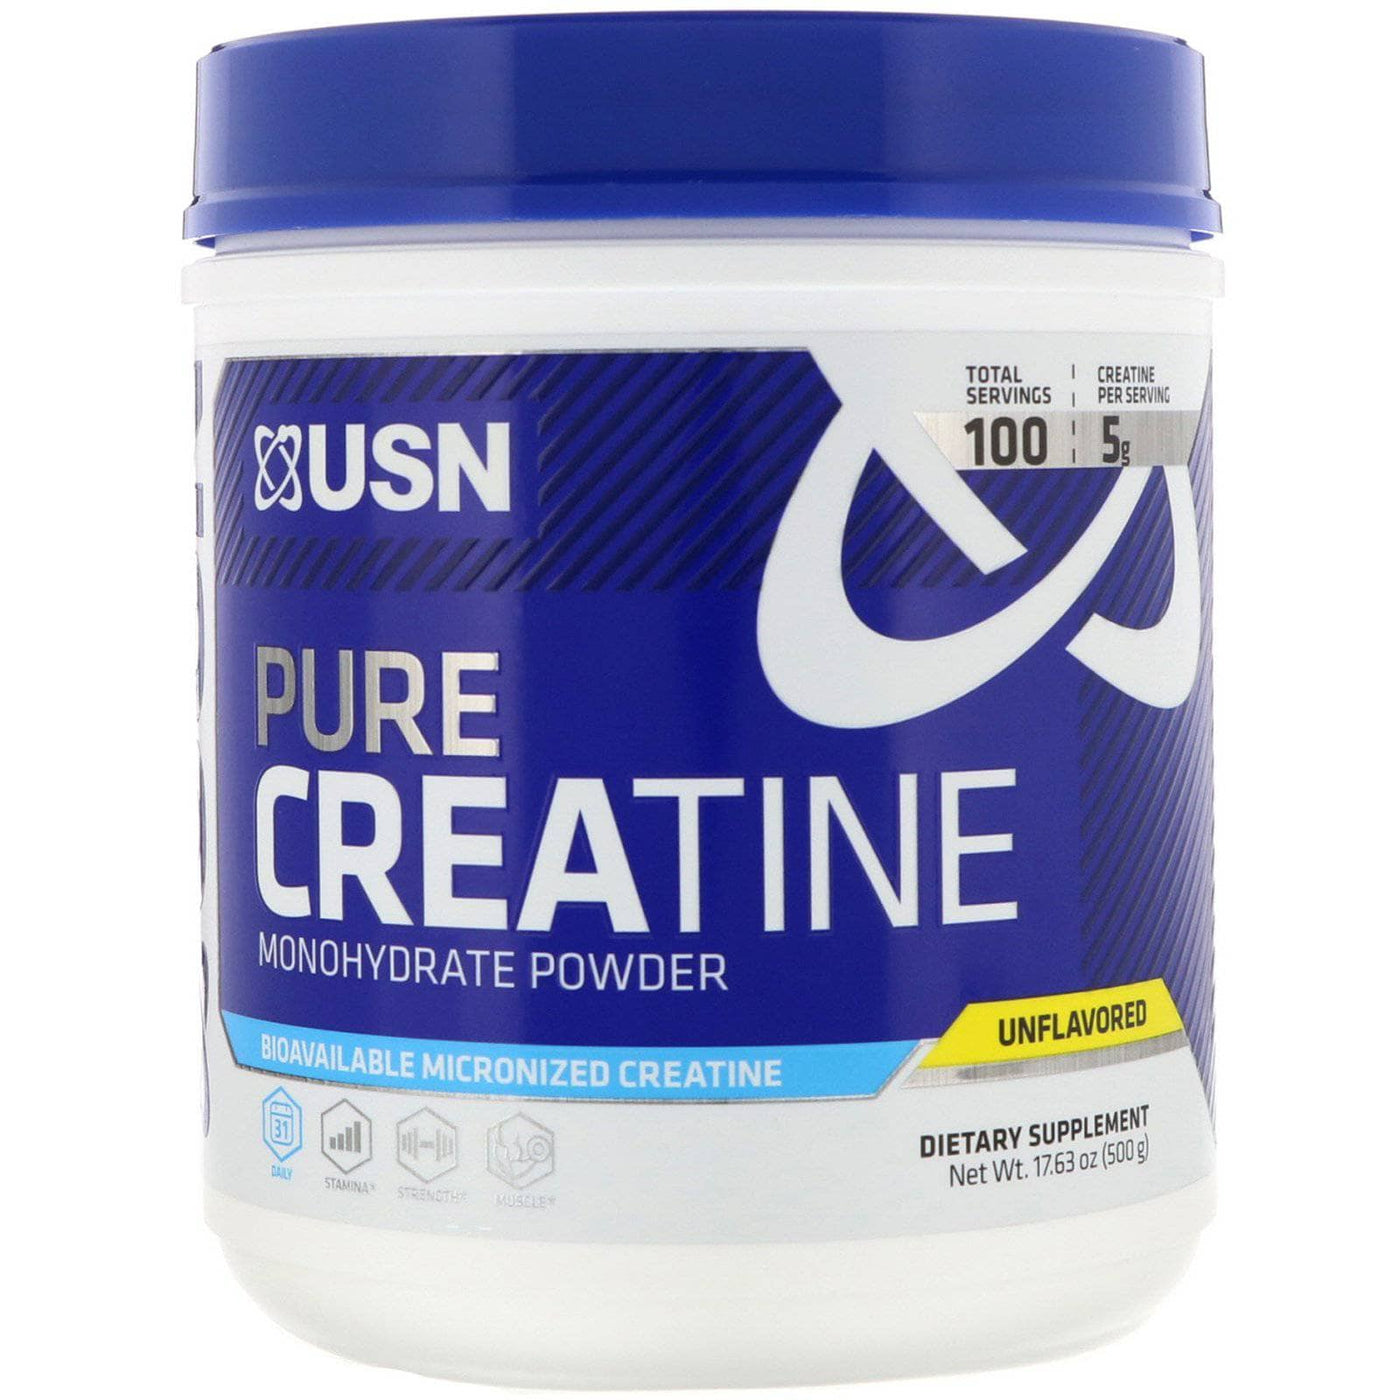 USN Pure Creatine Monohydrate Powder Unflavored